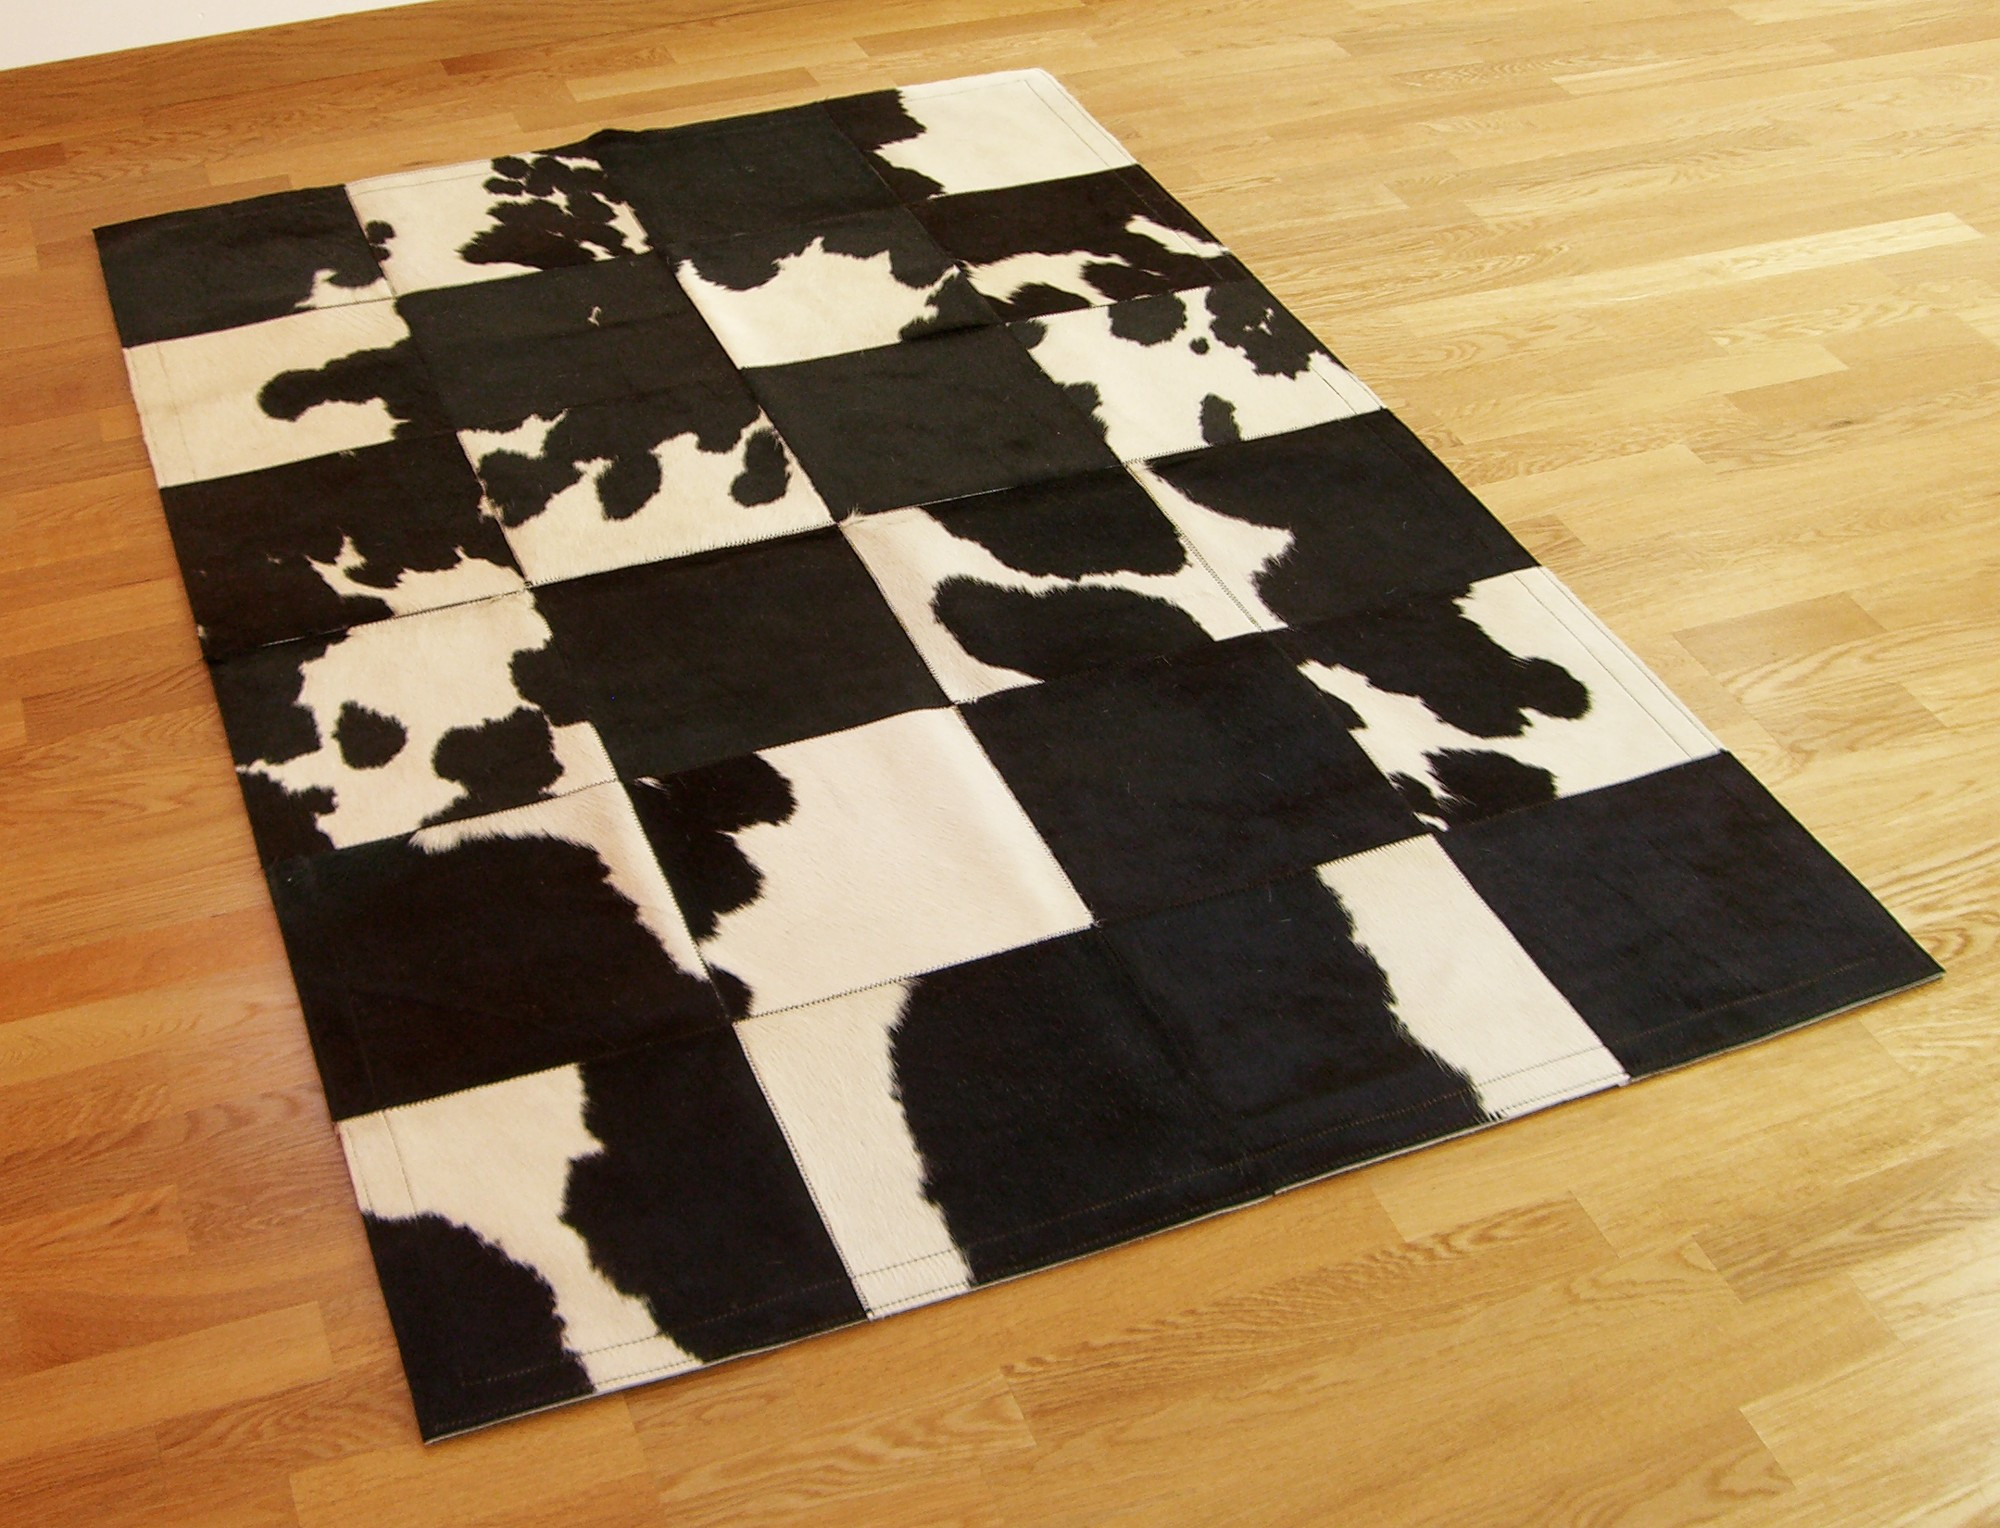 tapis patchwork en peau de vache noire et blanche. Black Bedroom Furniture Sets. Home Design Ideas